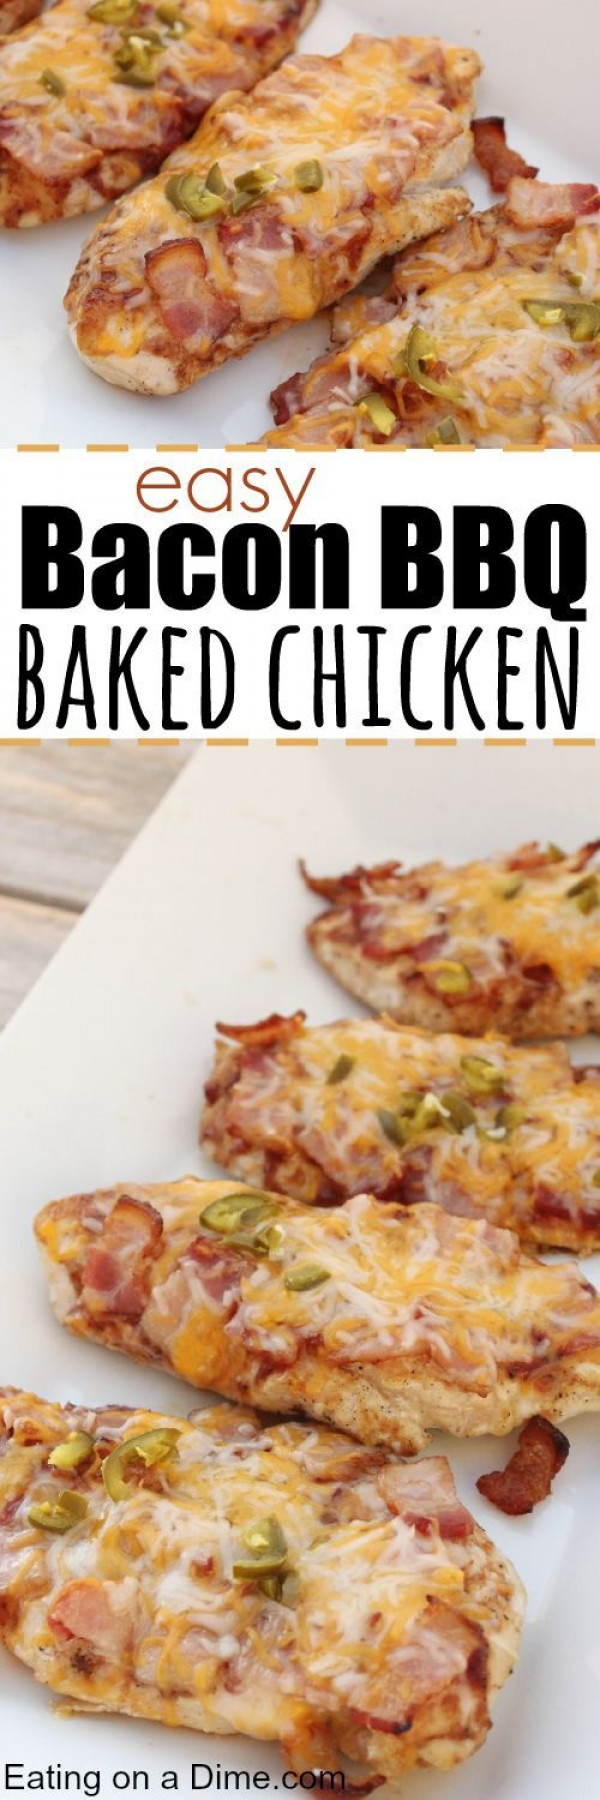 Get the recipe Bacon BBQ Baked Chicken @recipes_to_go